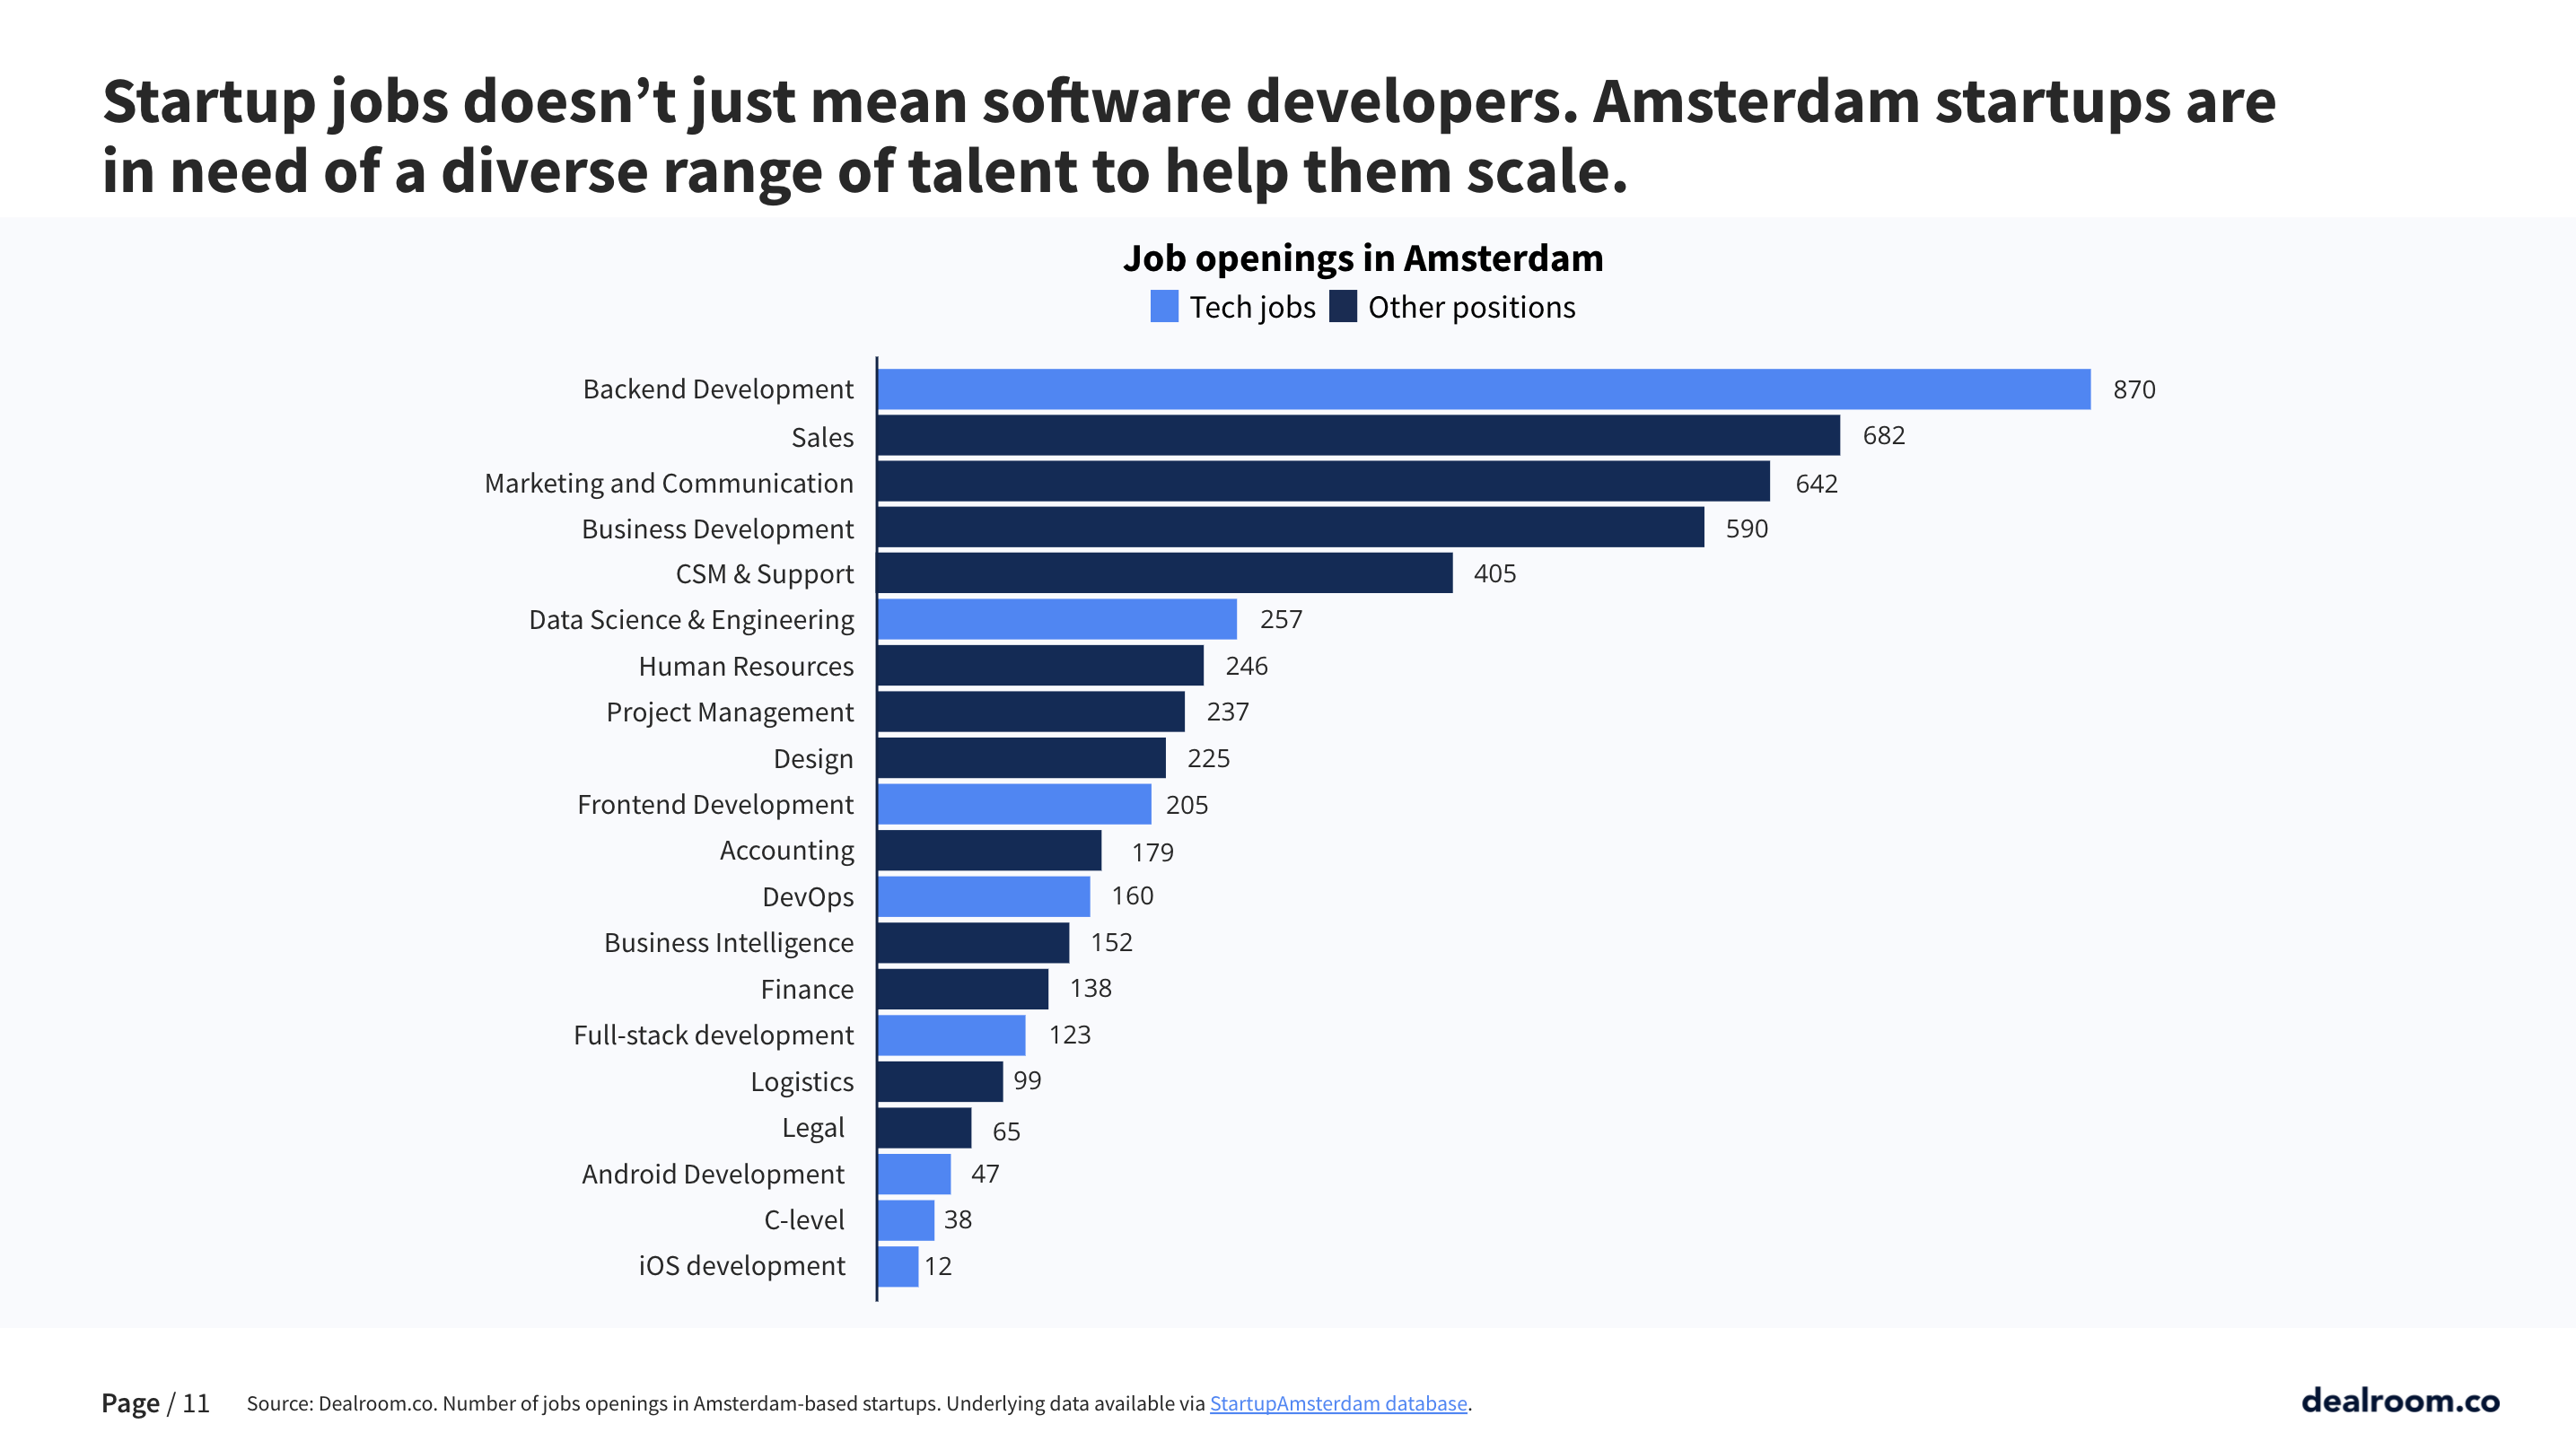 Amsterdam startups are in need of a diverse range of talent